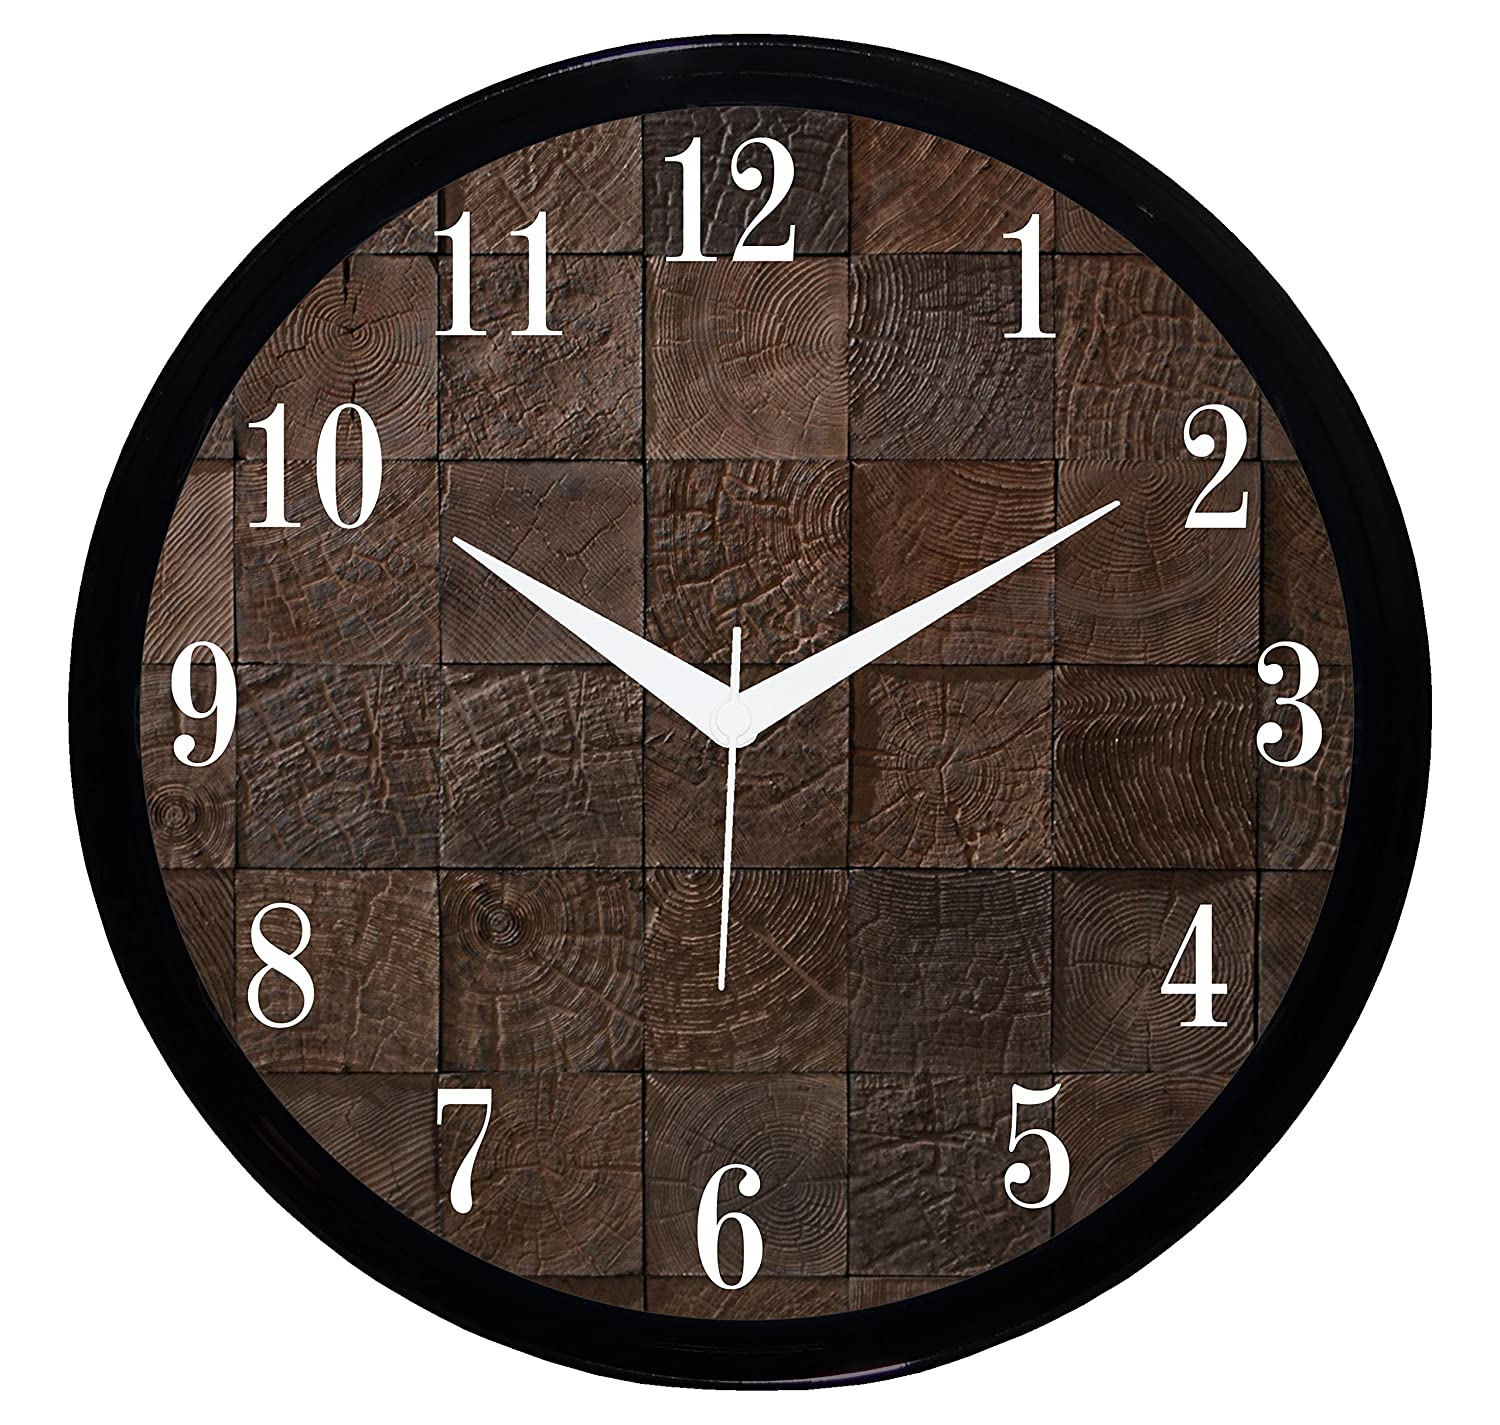 Antique wall clocks online india for Best wall clocks online